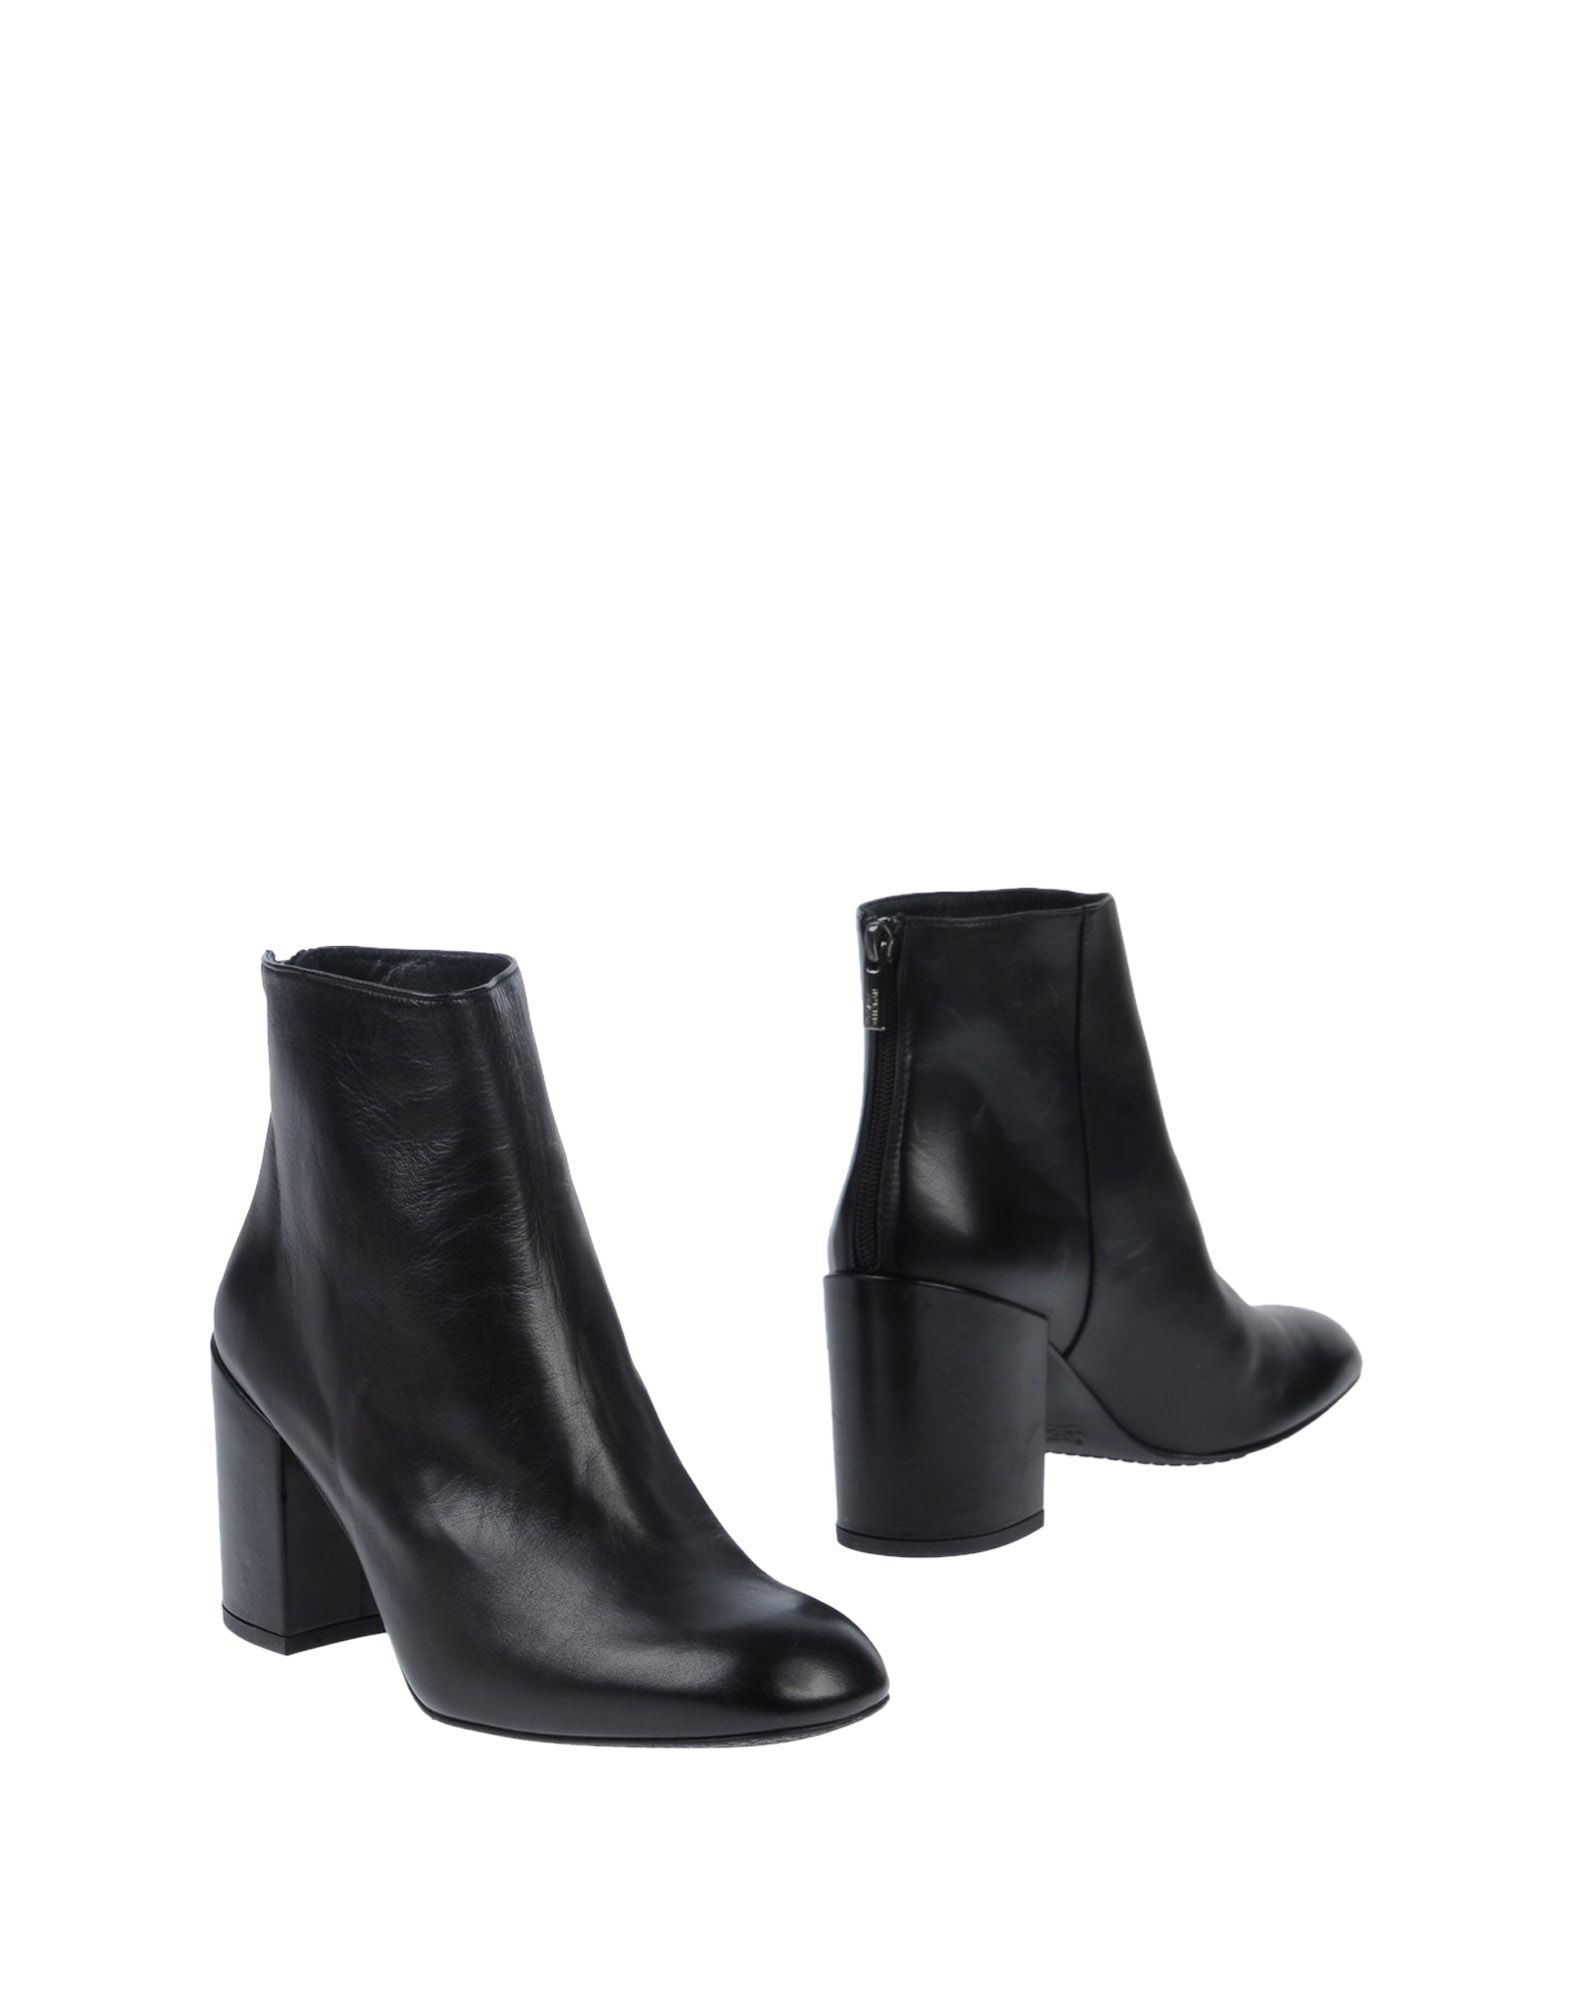 Bottine Stuart Weitzman Femme - Bottines Stuart Weitzman Noir Confortable et belle